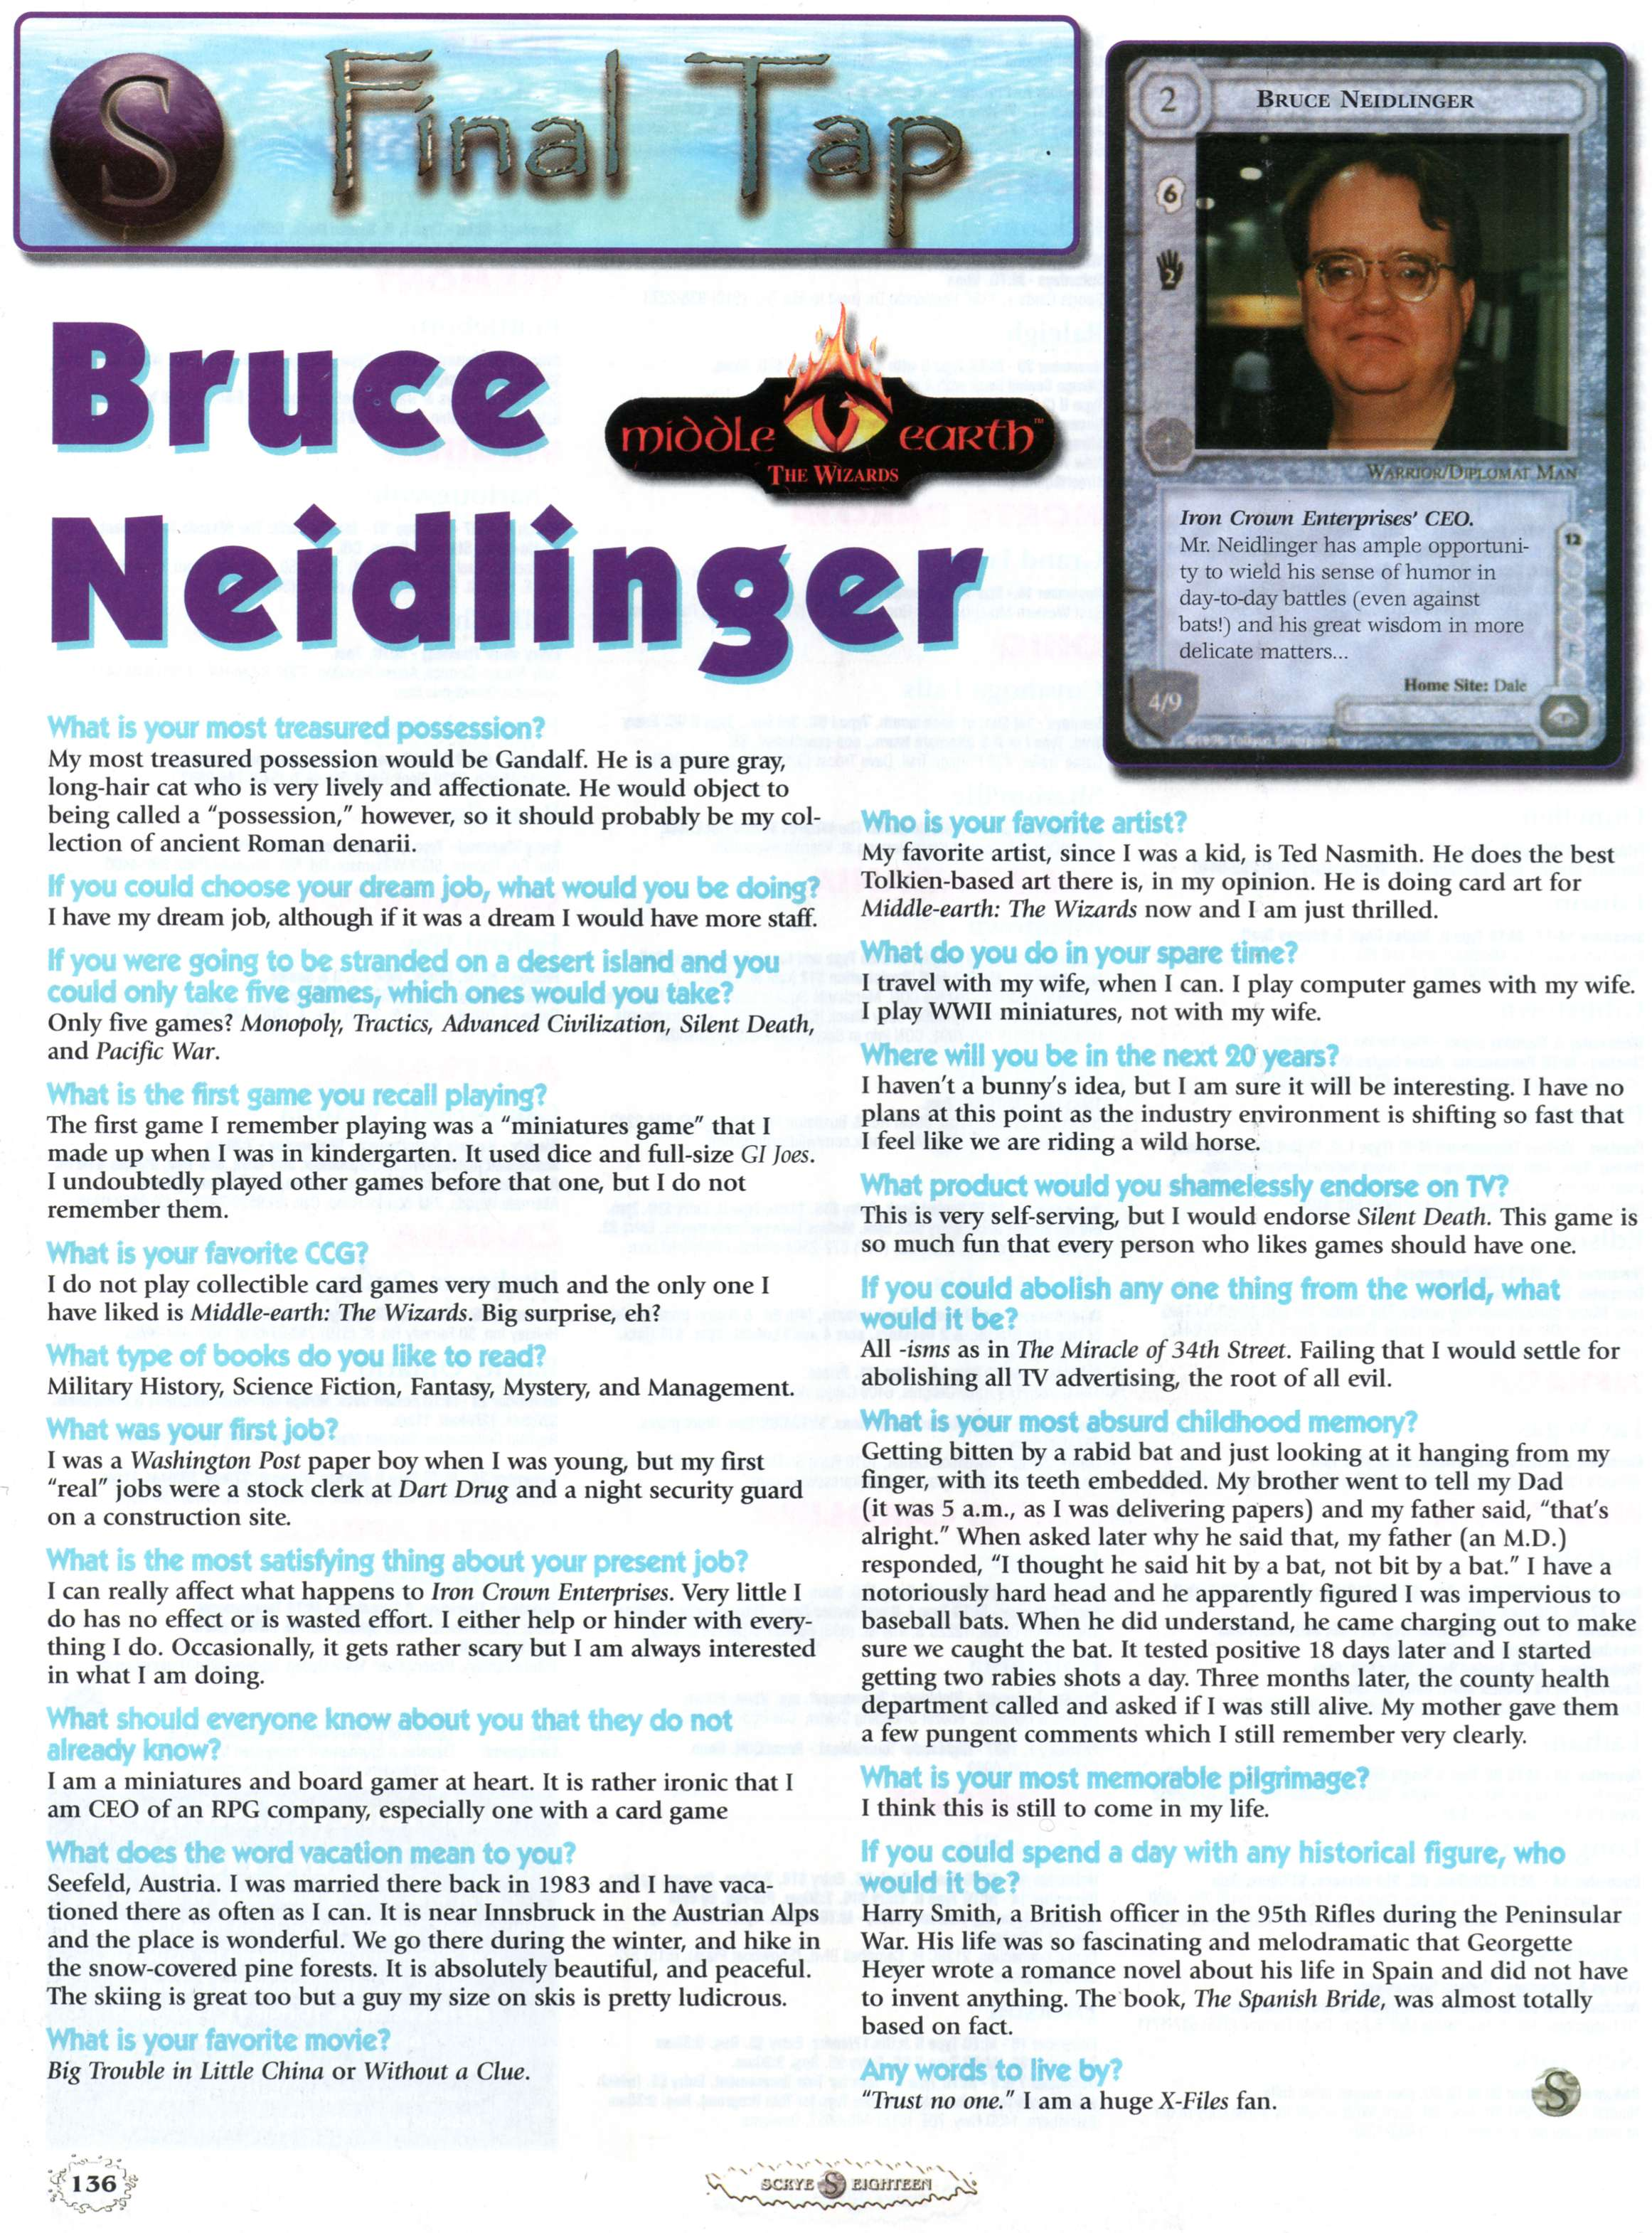 18_interview_Bruce_Neidlinger.jpg